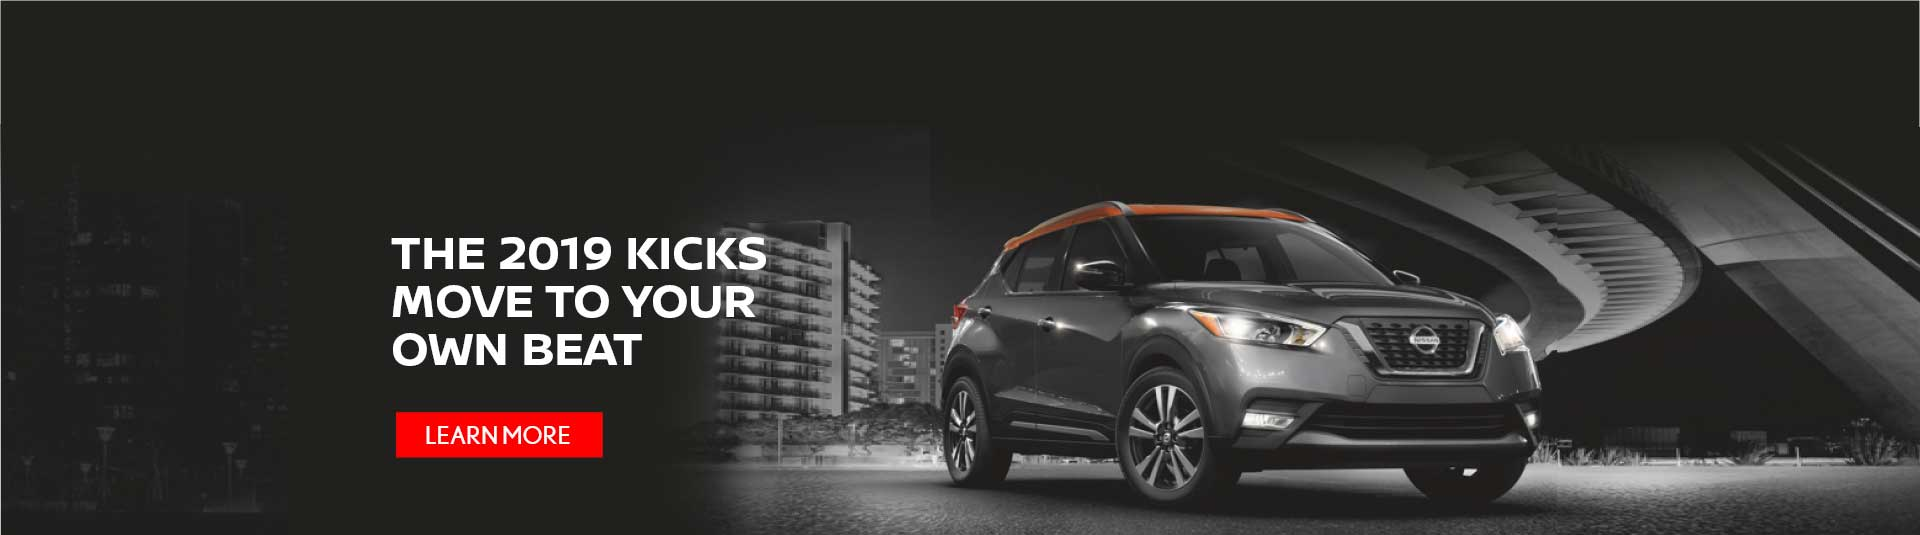 nissan-kicks-hero